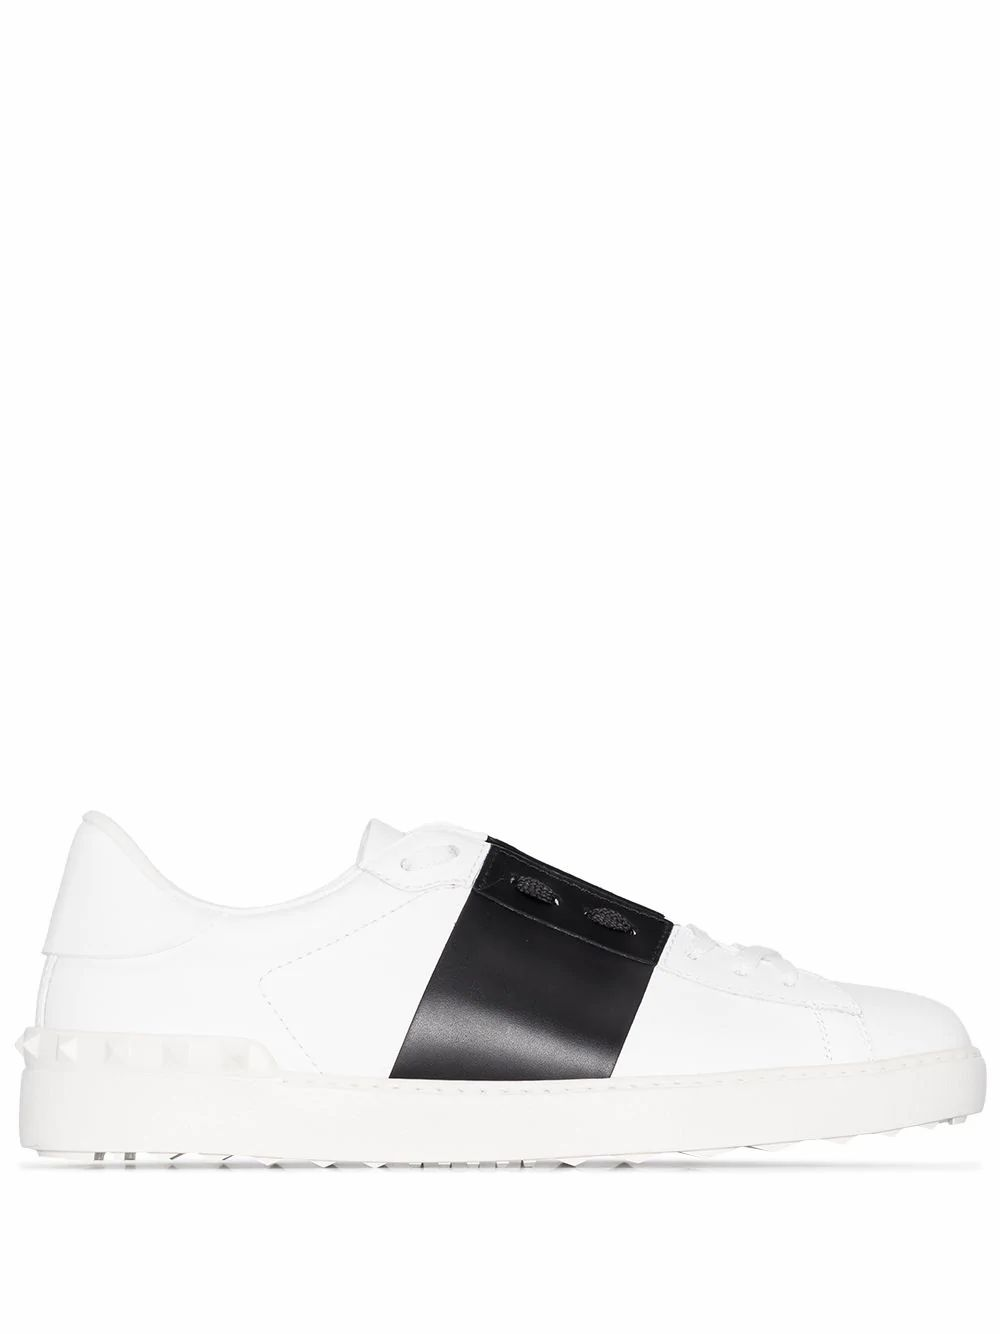 Valentino VALENTINO GARAVANI MEN'S WHITE LEATHER SNEAKERS